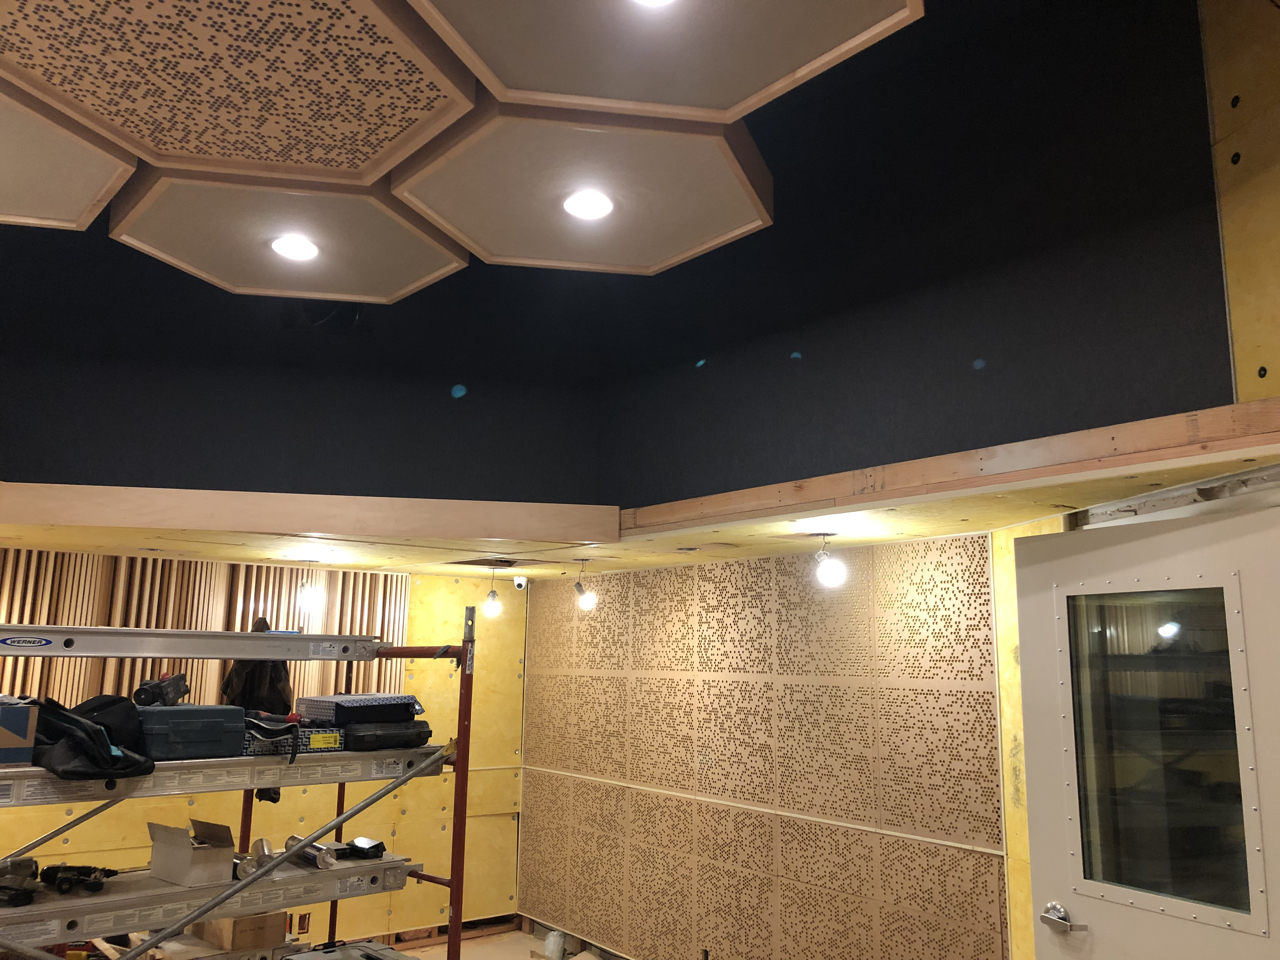 Soffit returns in control room 1 with fabric installed.